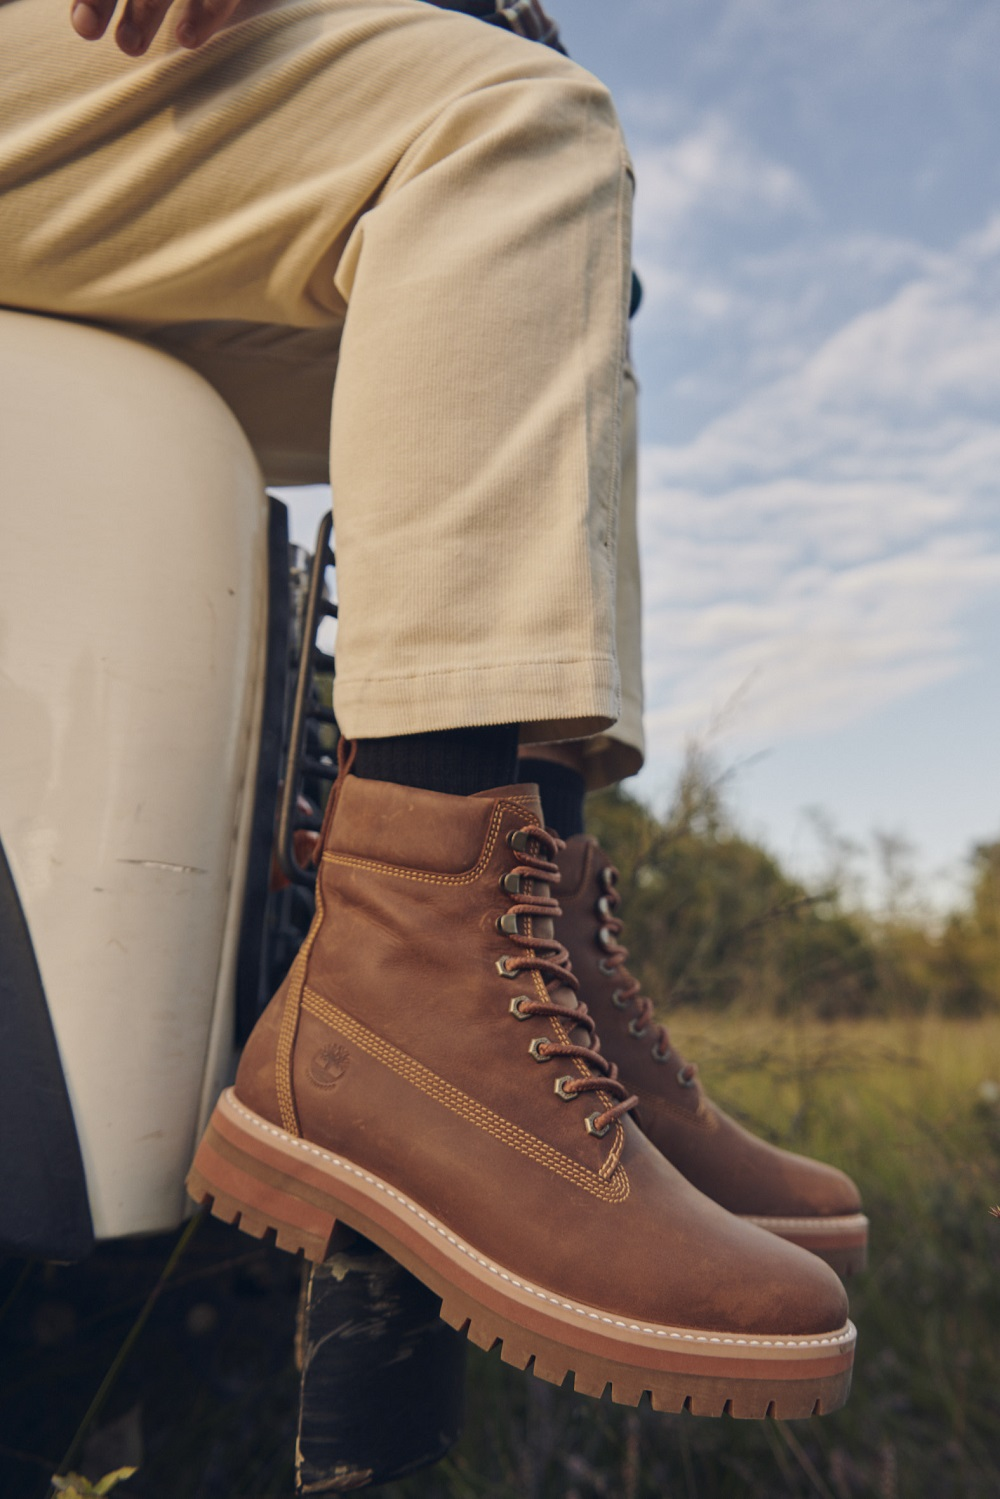 VF-owned footwear brand Timberland plans for all products to have a net positive impact on nature by 2030, giving back more than it takes.